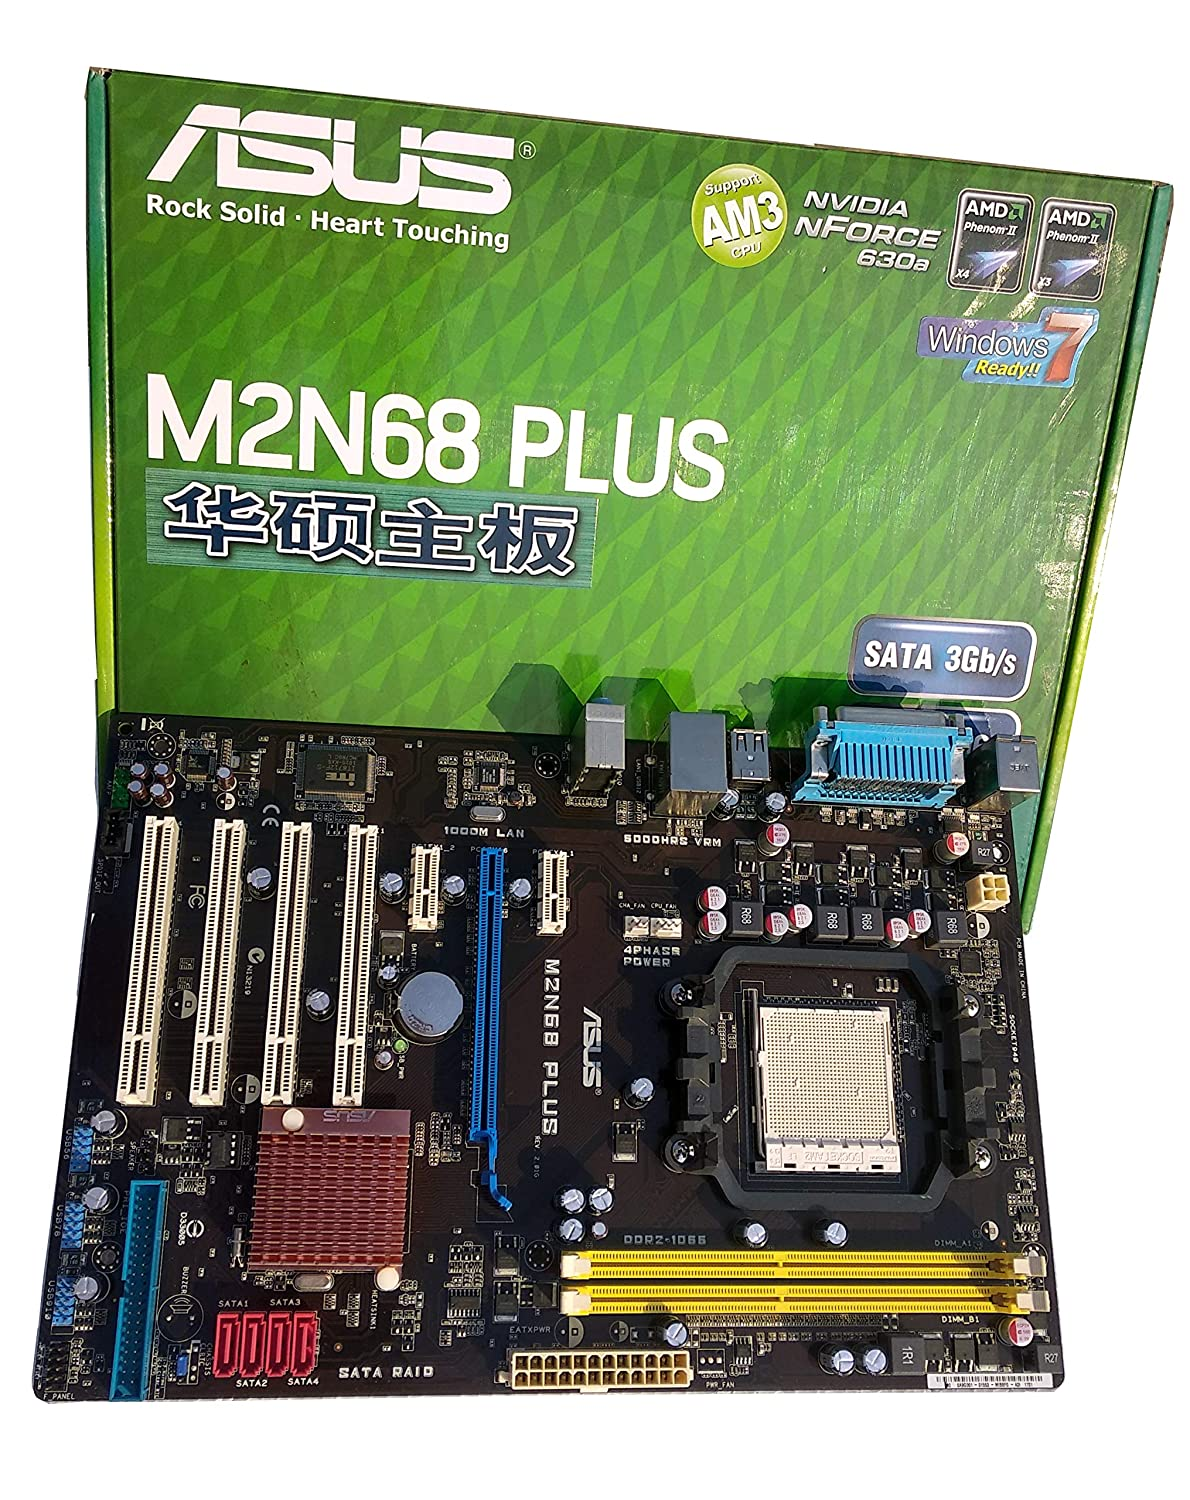 Asus M2N68 PLUS AMD Cool&Quiet Driver for Windows 10